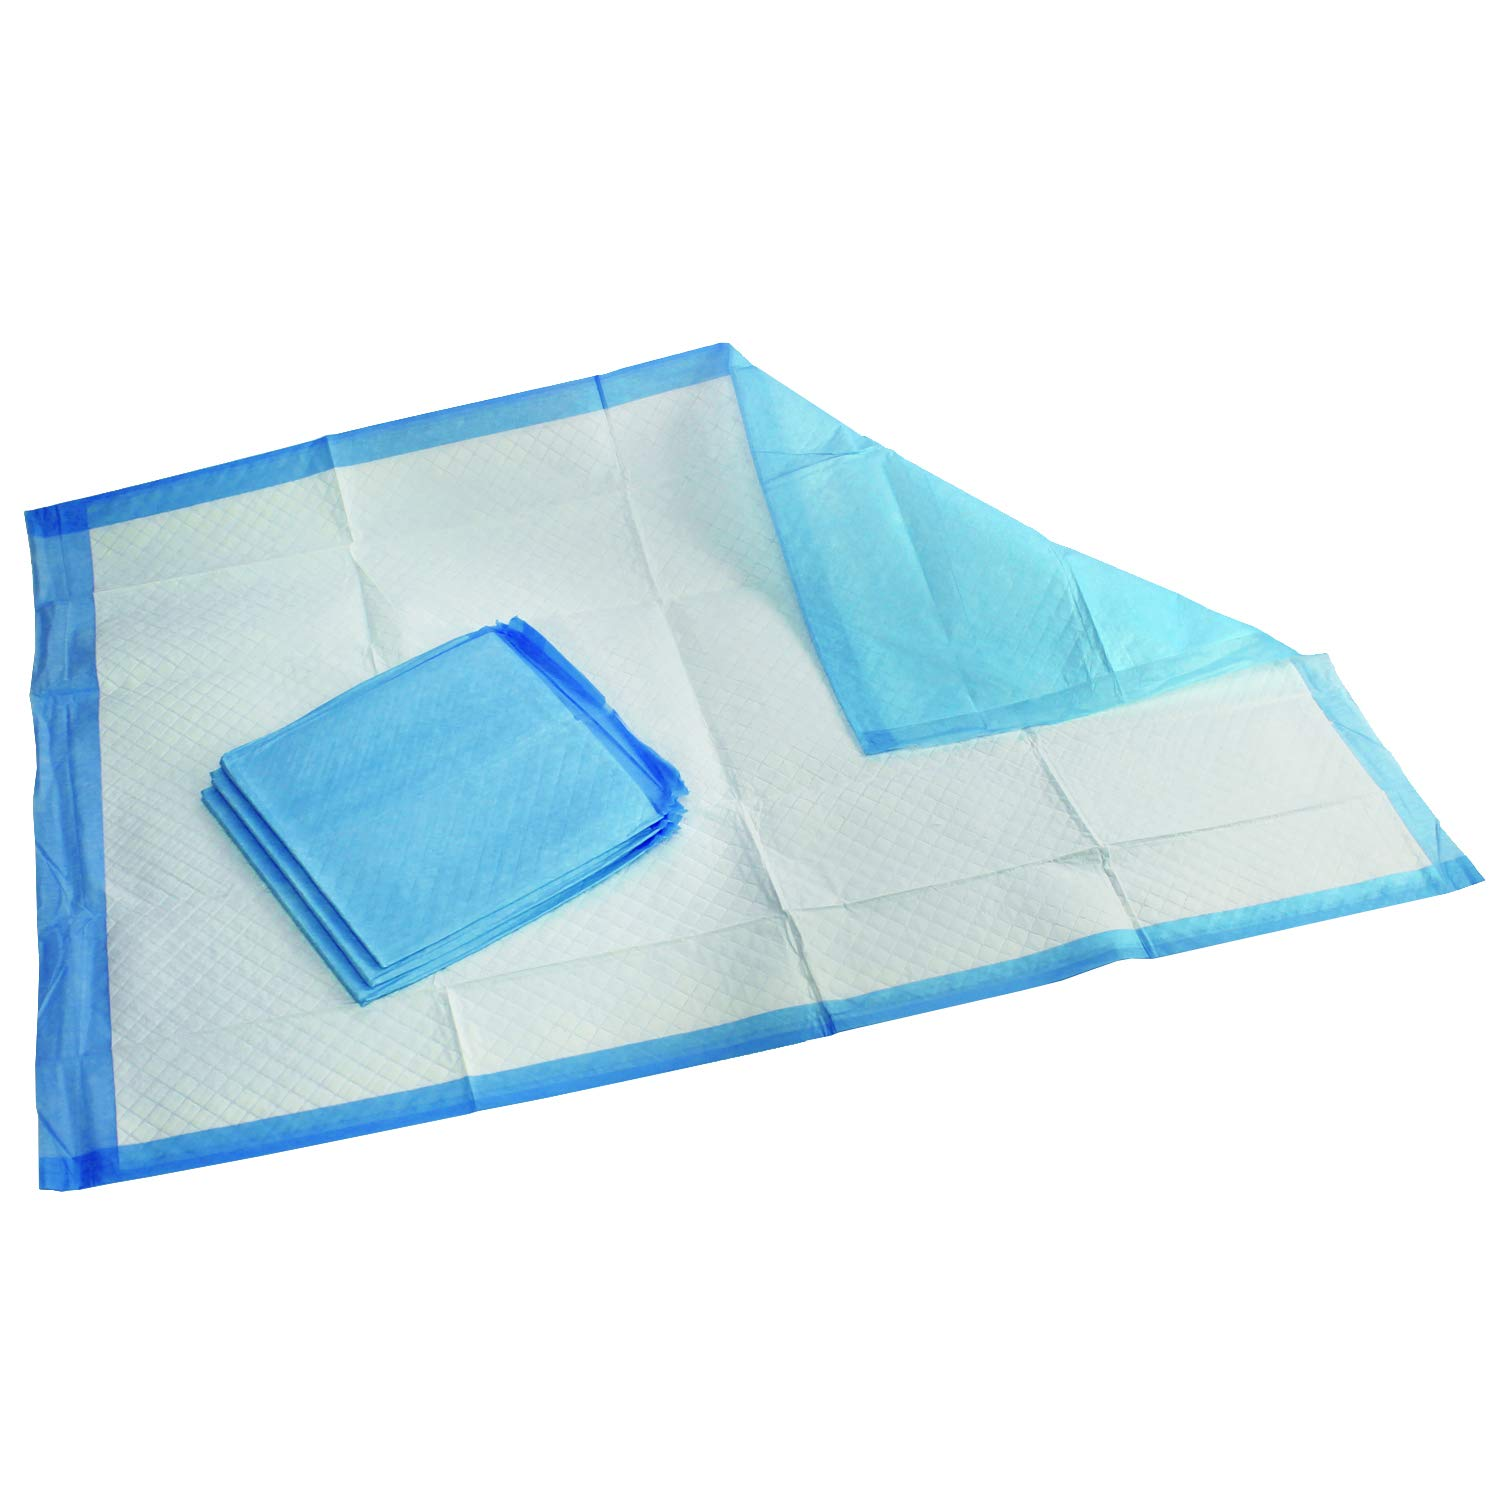 Medpride Disposable Underpads 23'' X 36'' (50-Count) Incontinence Pads, Bed Covers, Puppy Training | Thick, Super Absorbent Protection for Kids, Adults, Elderly | Liquid, Urine, Accidents by MED PRIDE